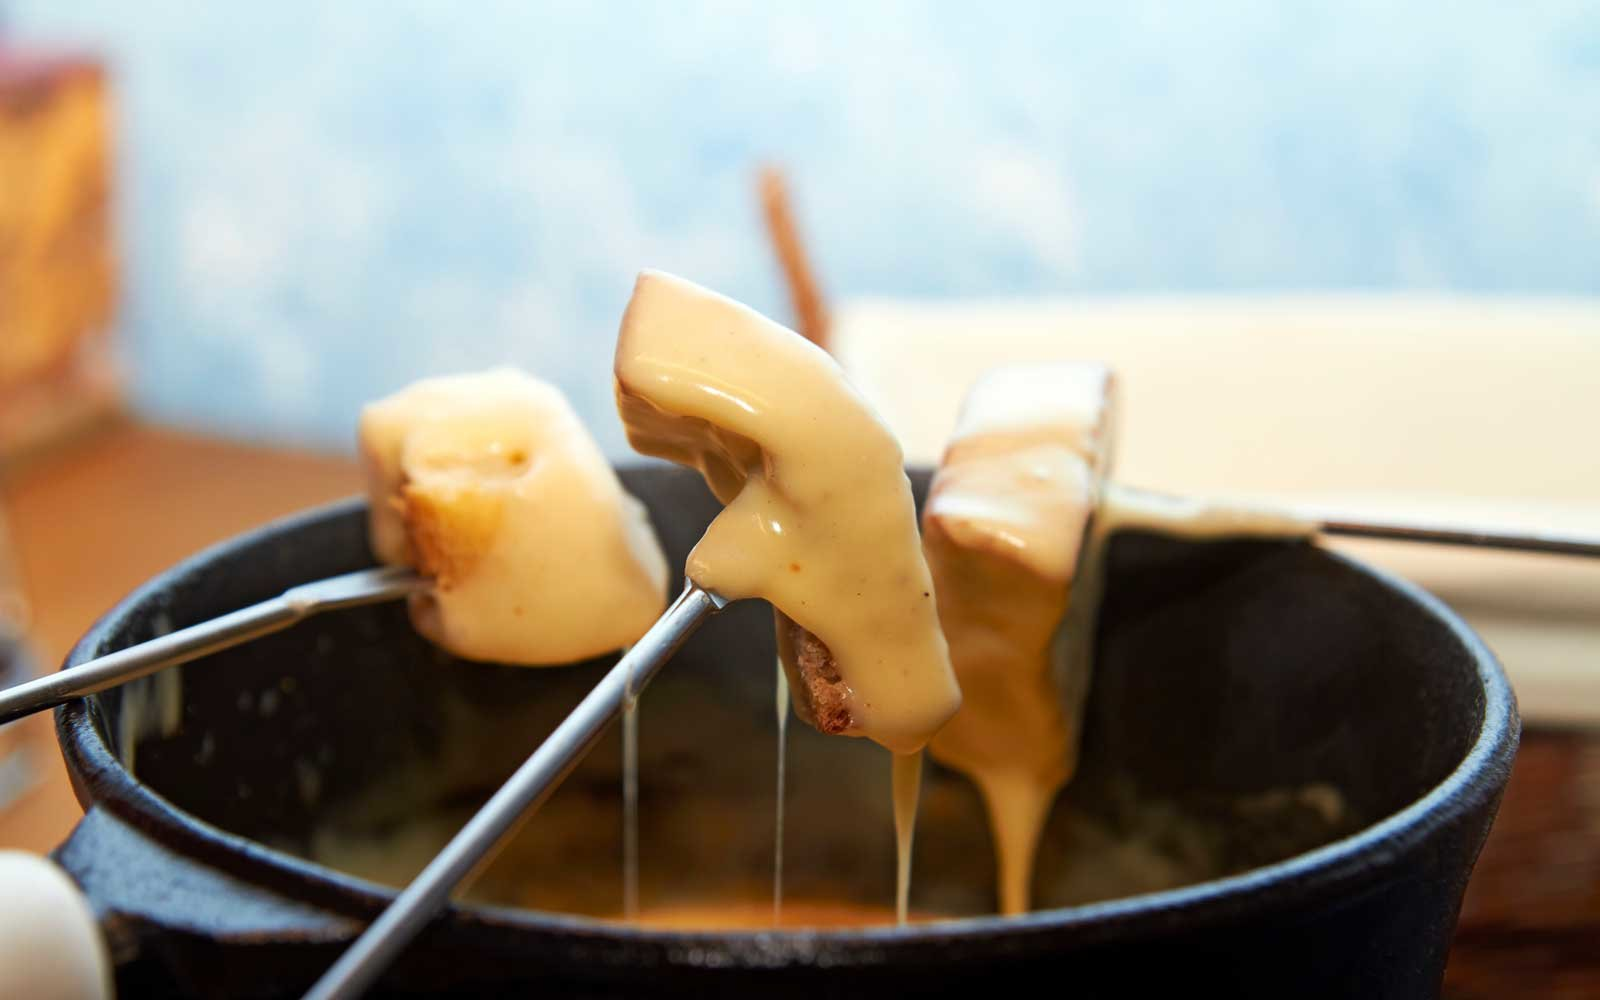 Swiss Air Lines passengers will be able to enjoy local delicacies like cheese fondue onboard European flights.